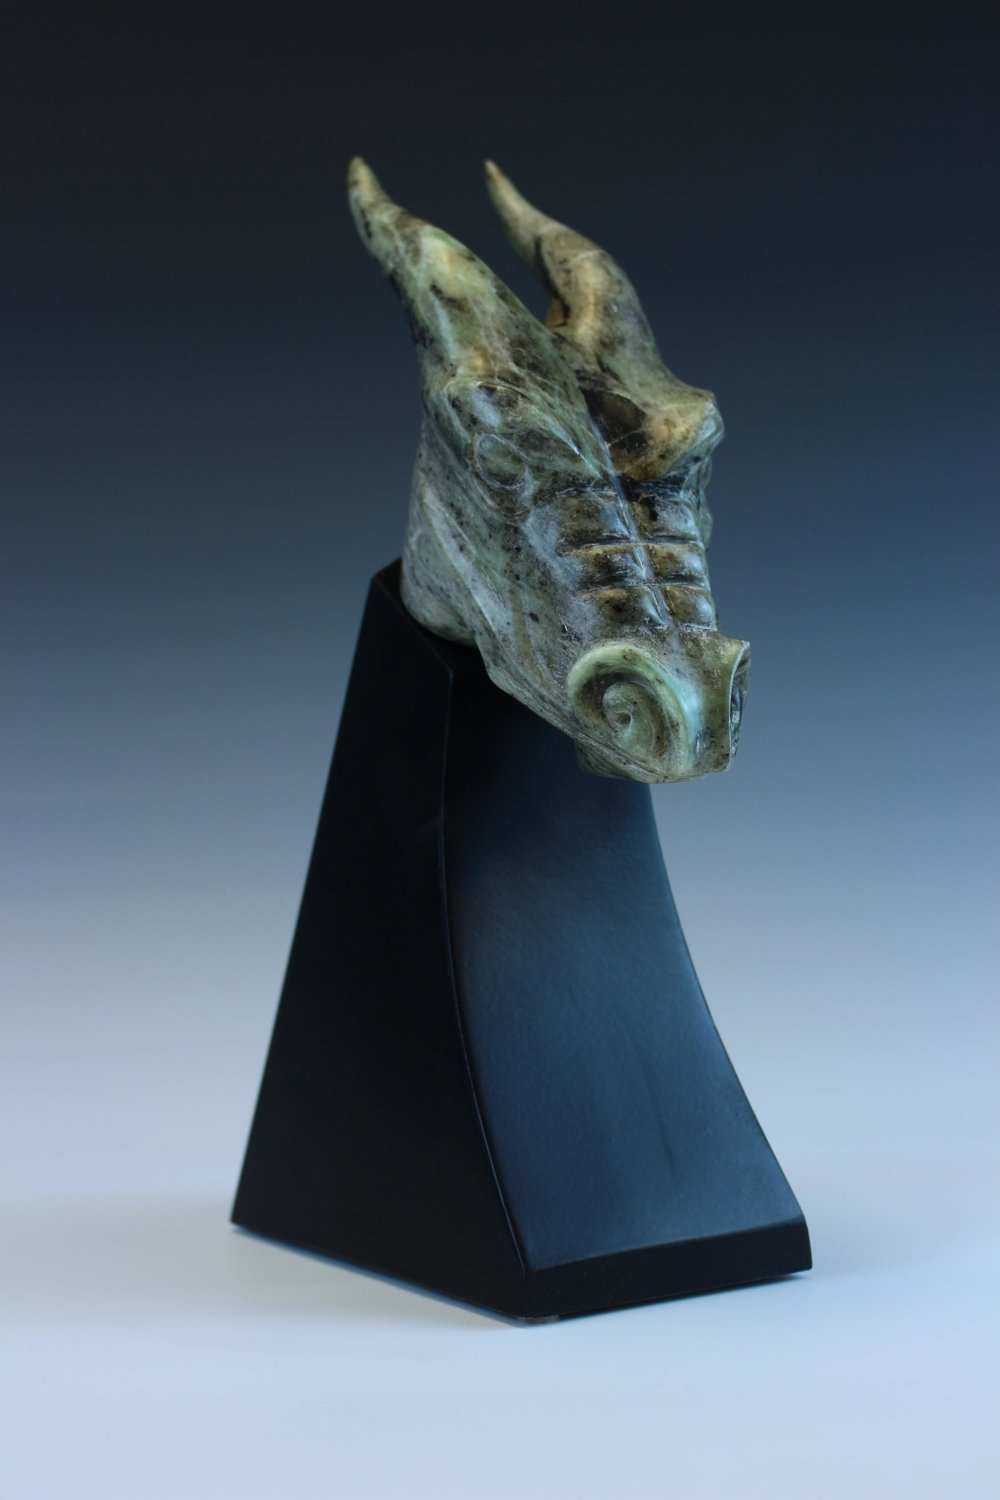 """Fearsome"" by Mike McCarthy, 12x3.5x7.5in, Southern Oregon Soapstone on Wood Base, $600 